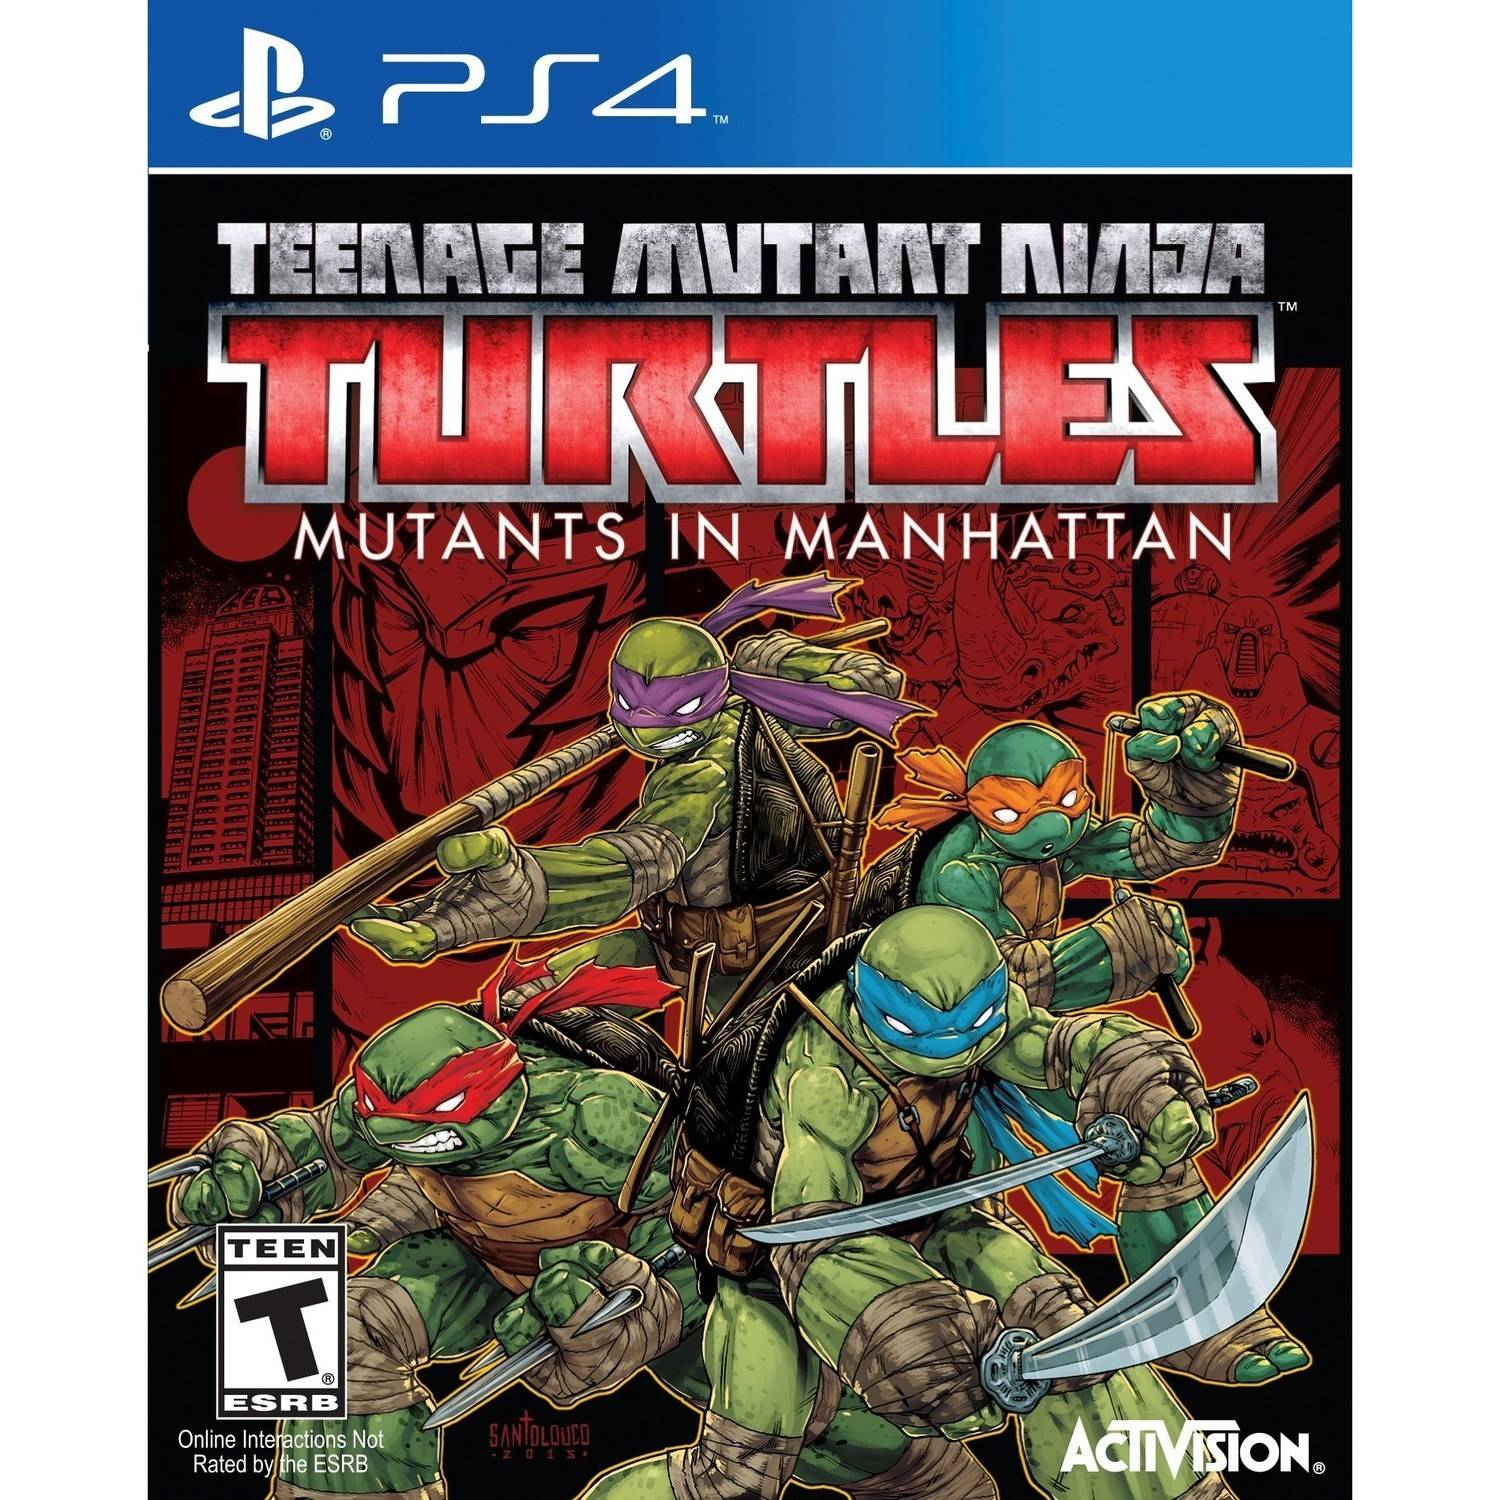 Teenage Mutant Ninja Turtles: Mutants in Manhattan - Pre-Owned (PS4)